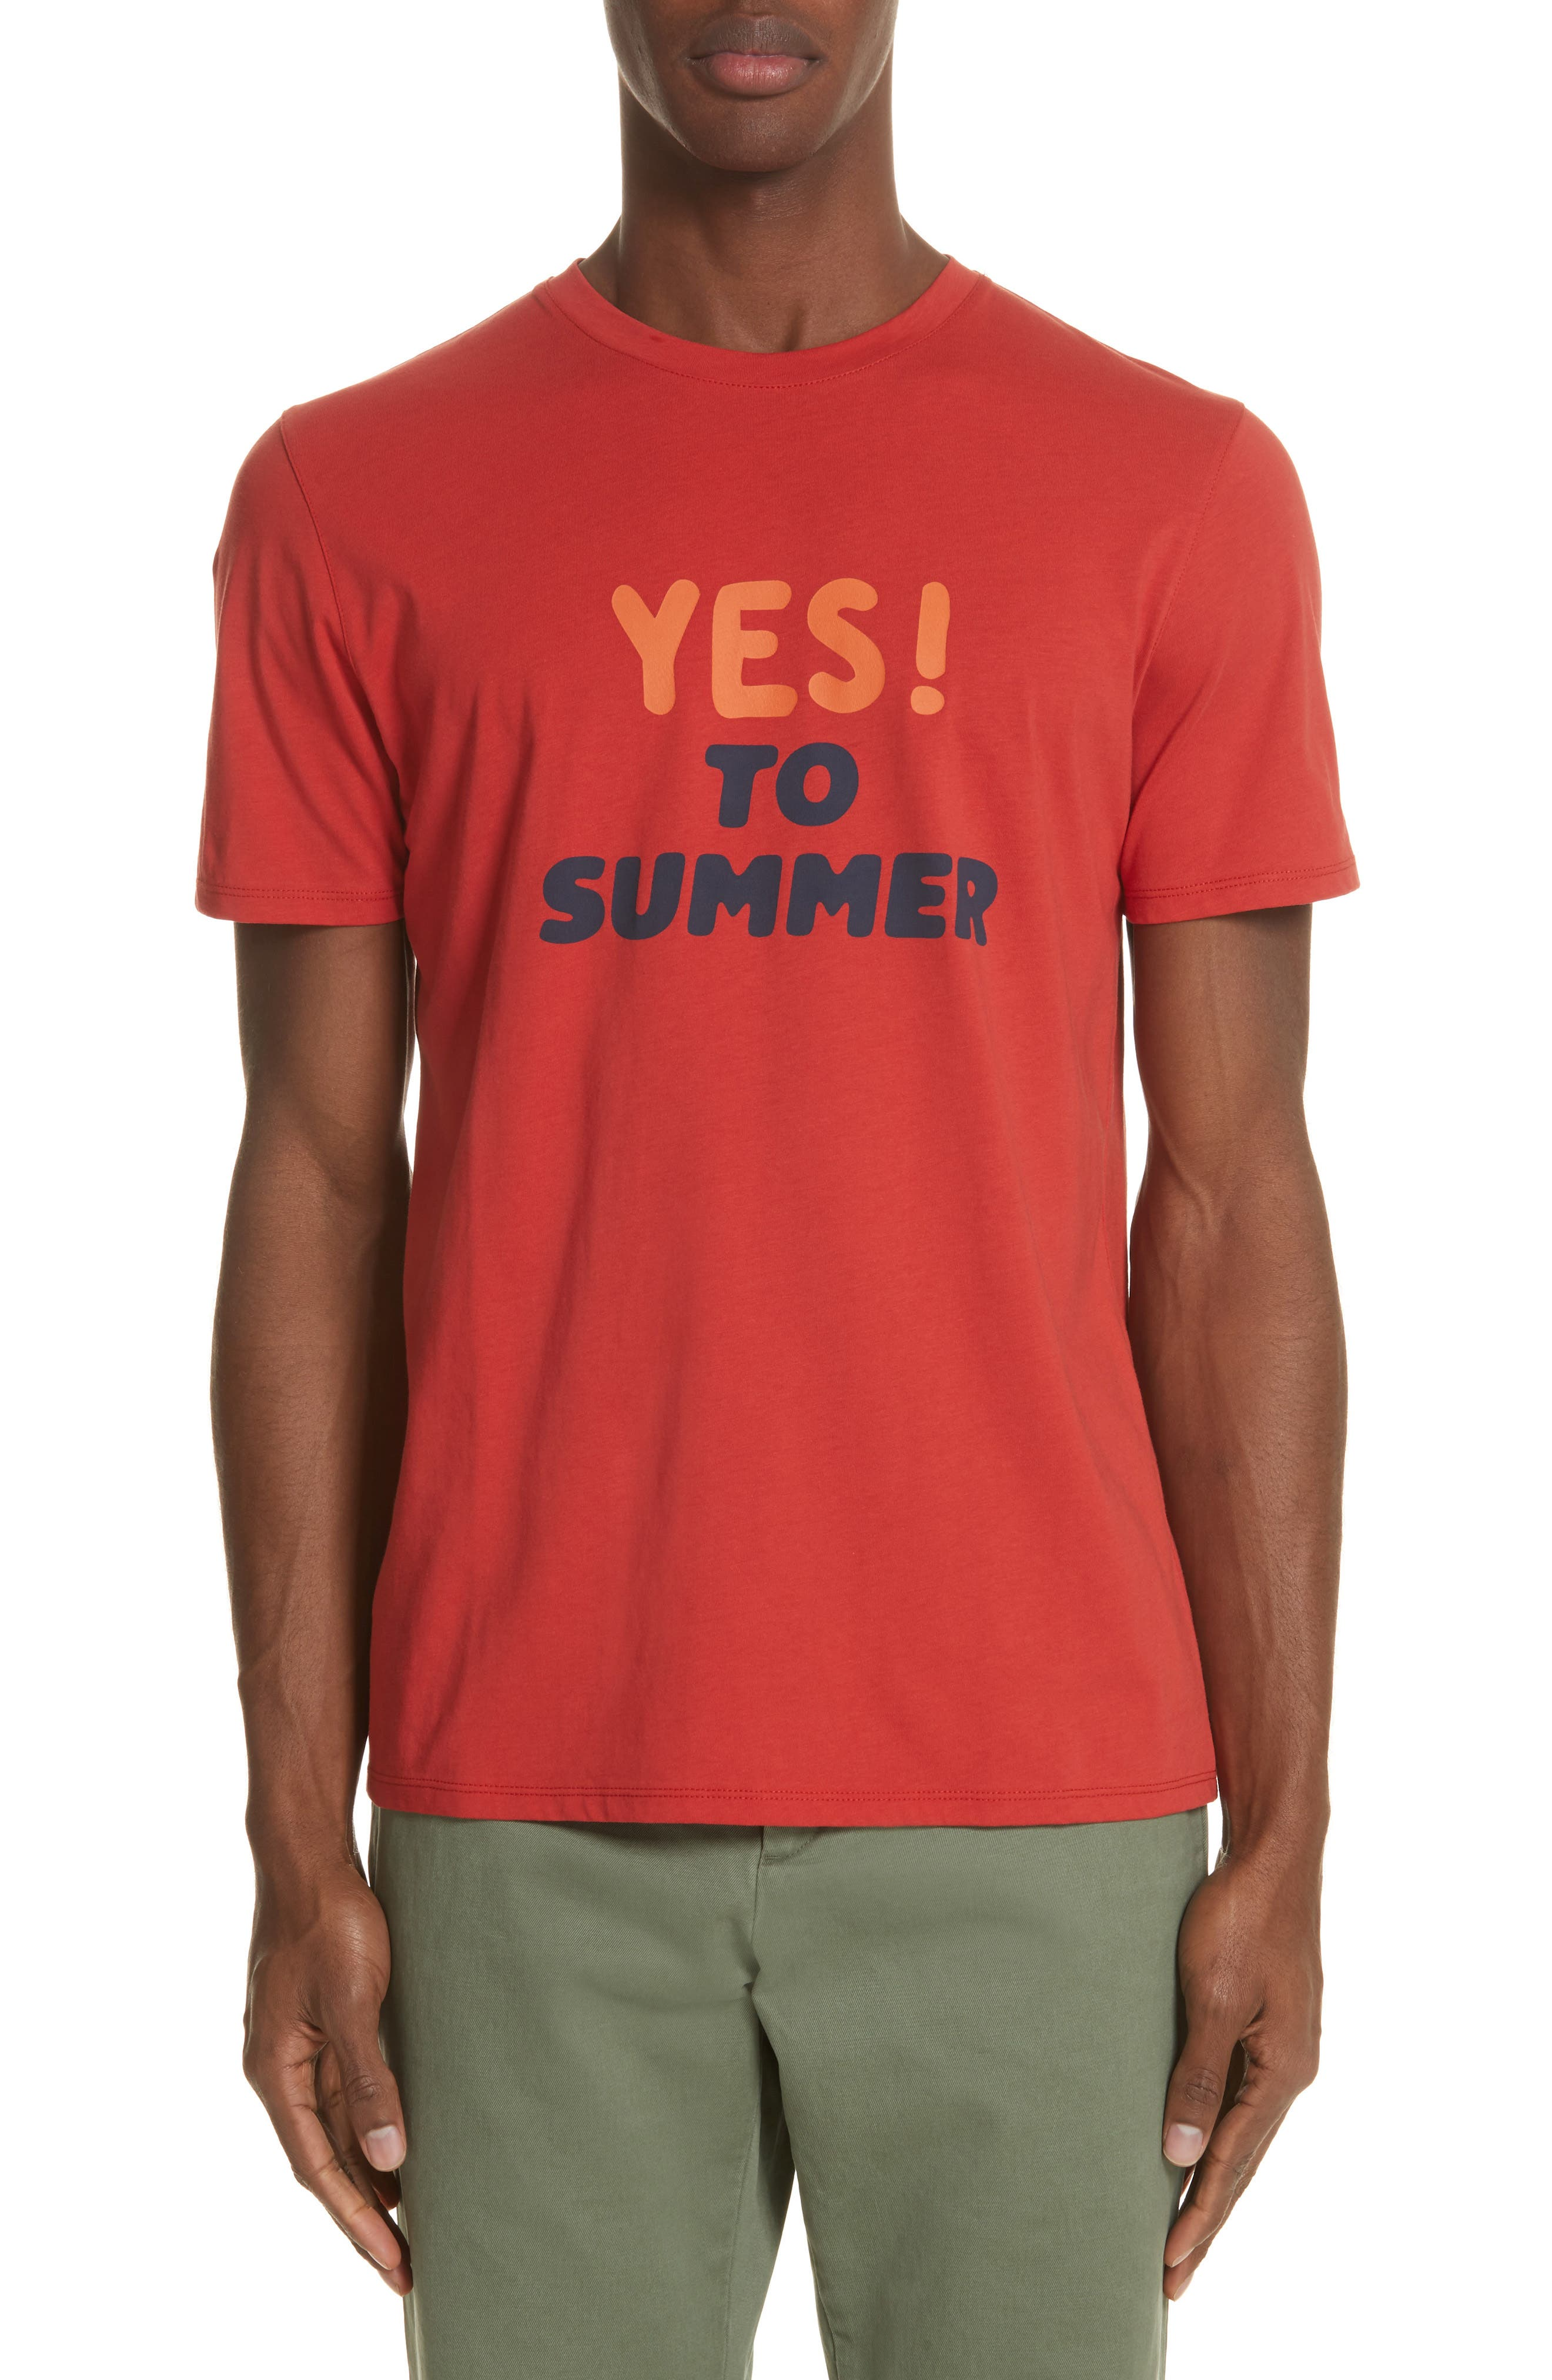 A.P.C. Yes! To Summer Graphic T-Shirt